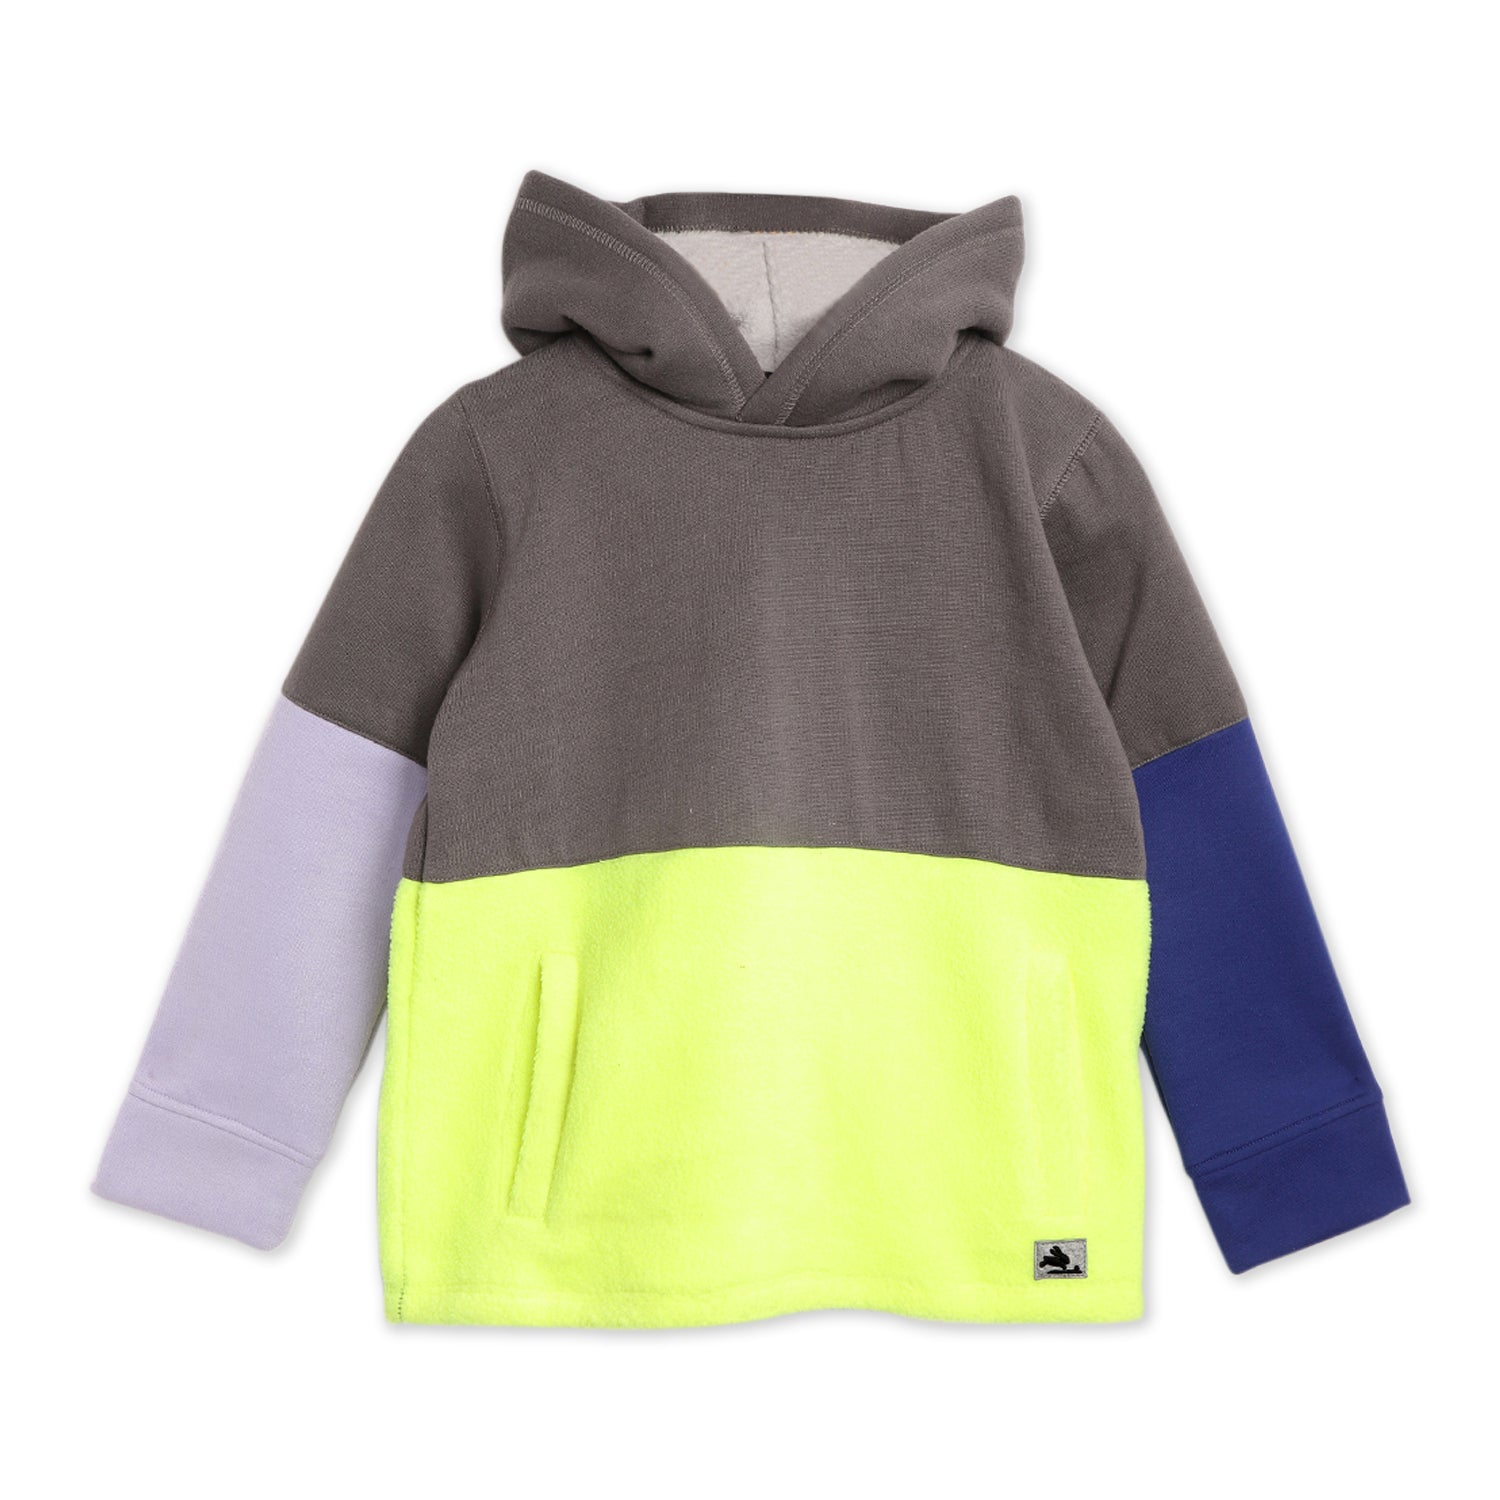 Cherry-Crumble-Kids-Boys-Long-Regular-Sleeves-Round-Neck-Full-Length-Colorblock-Pullover-Sweatshirt